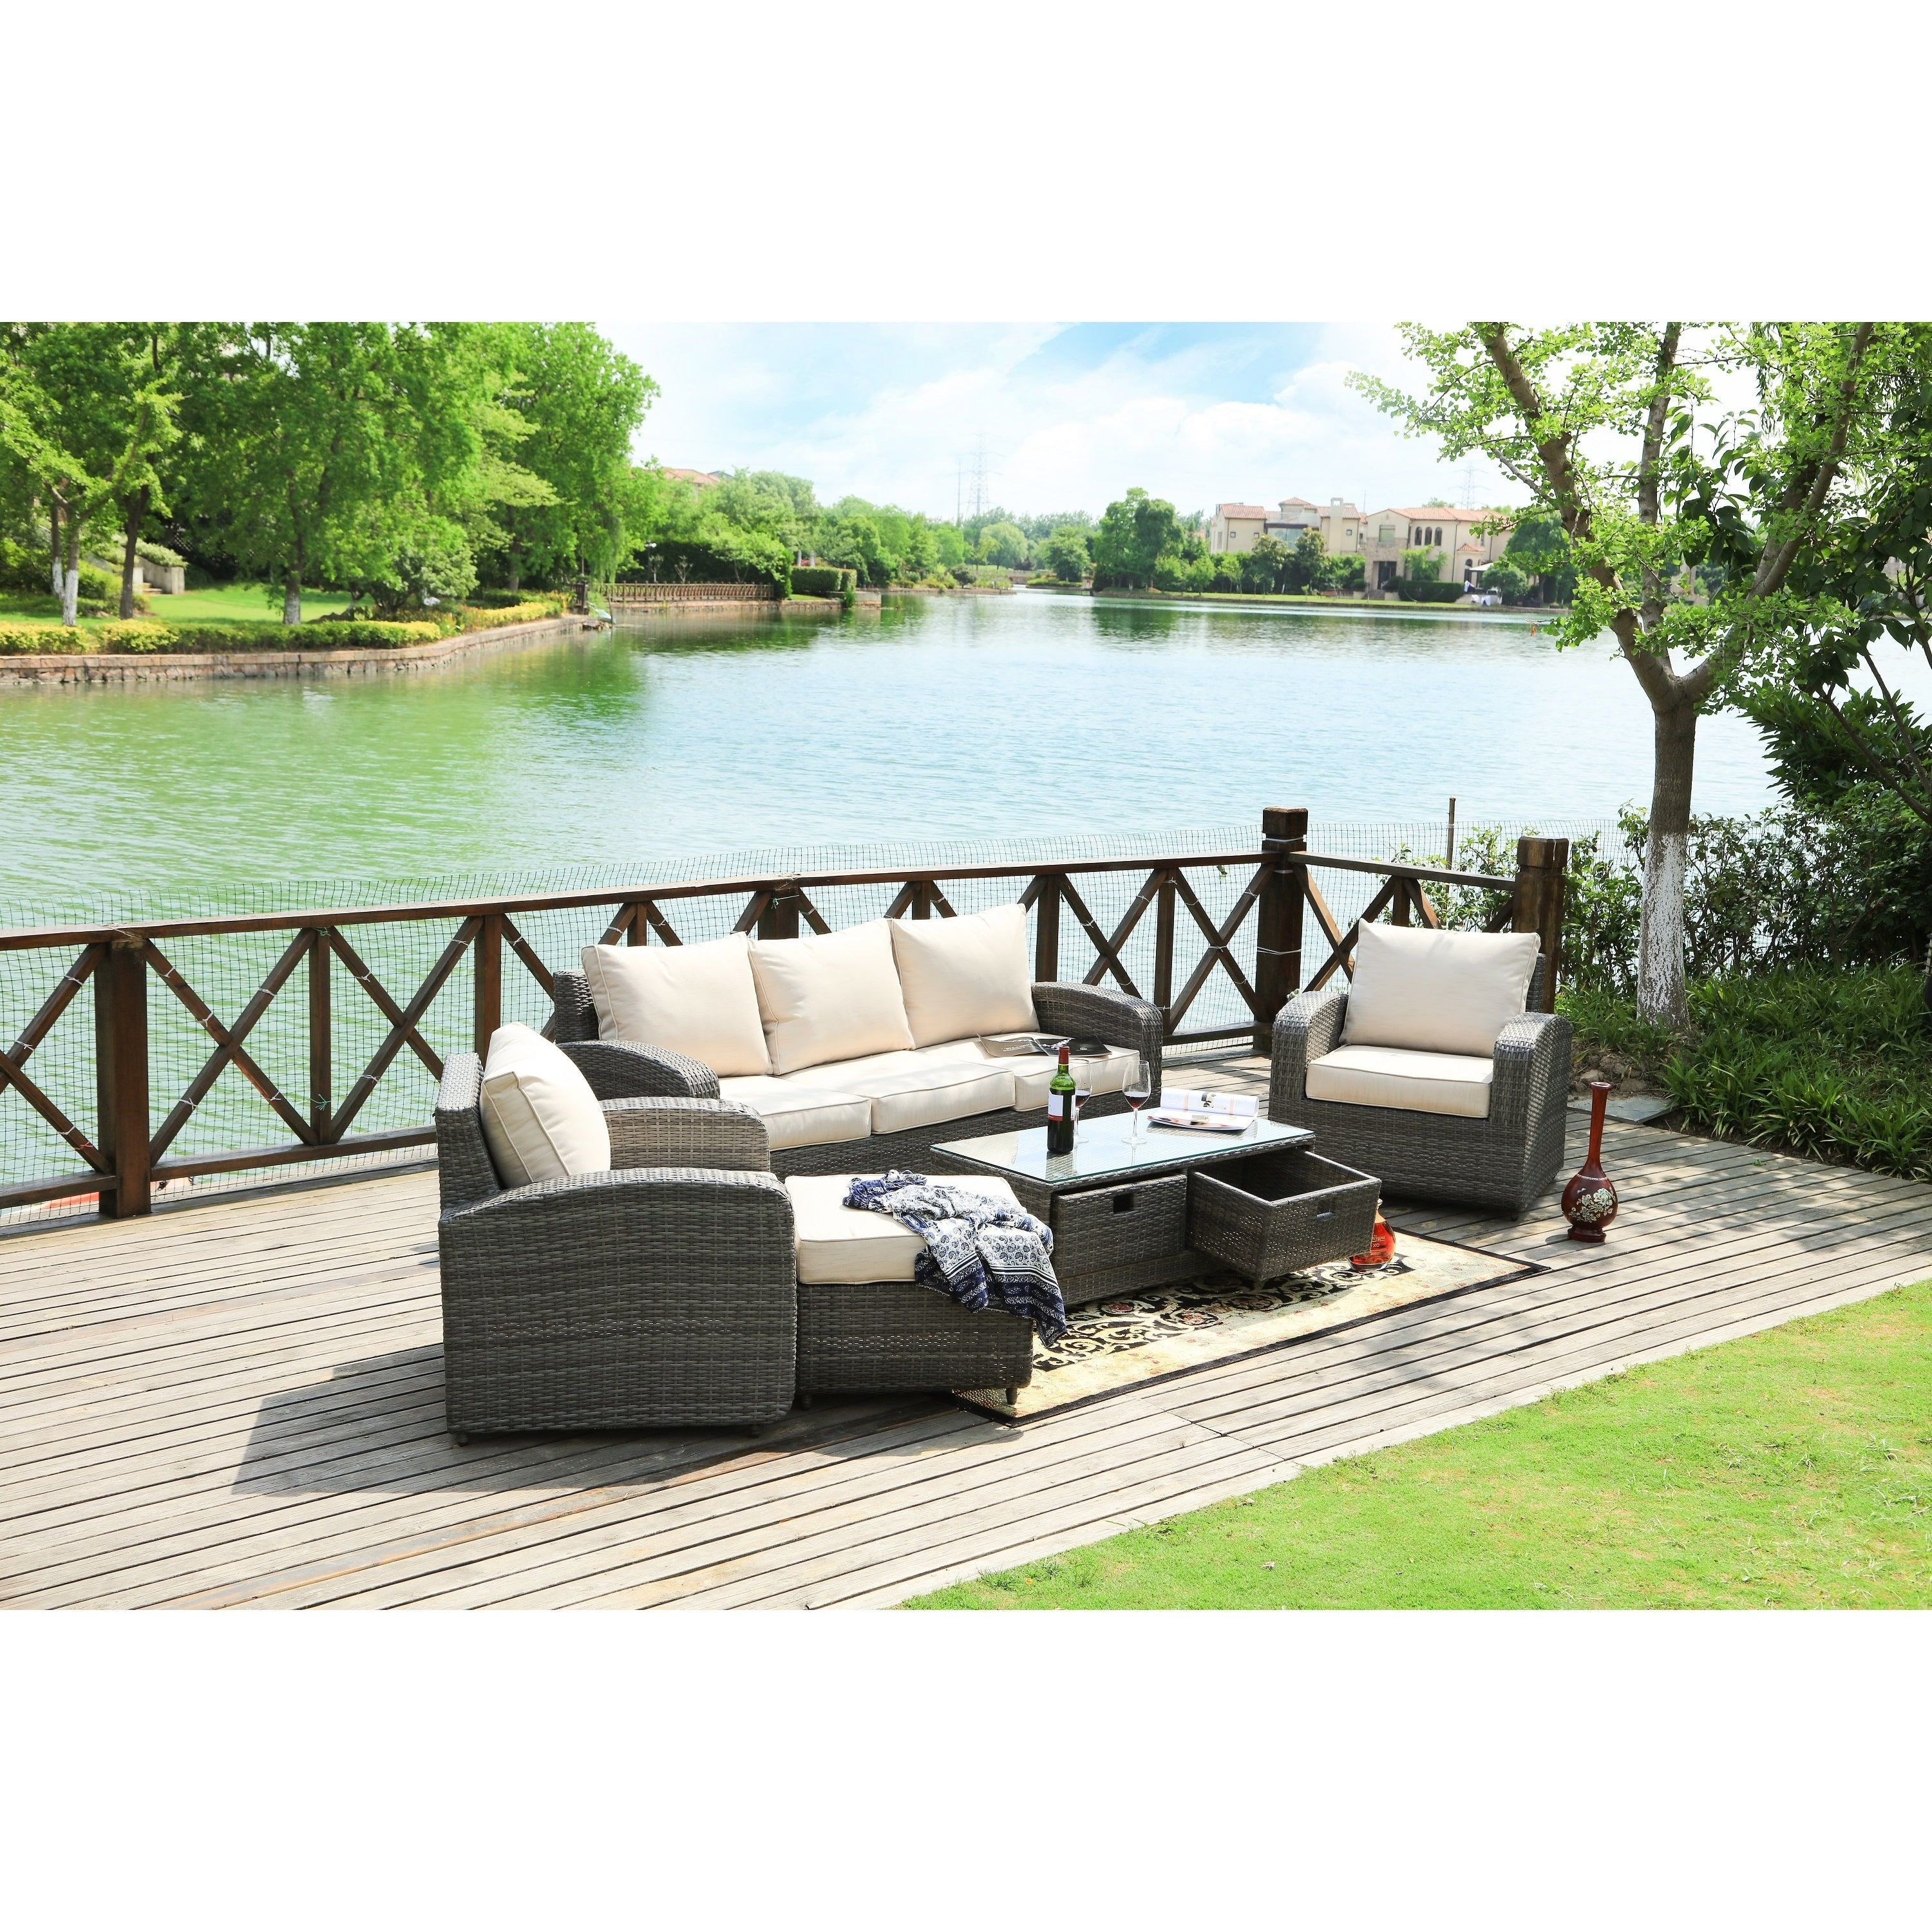 Direct wicker strathmere 5 piece deep wicker seating patio set brown rattan with black cushion size 5 piece sets patio furniture aluminum